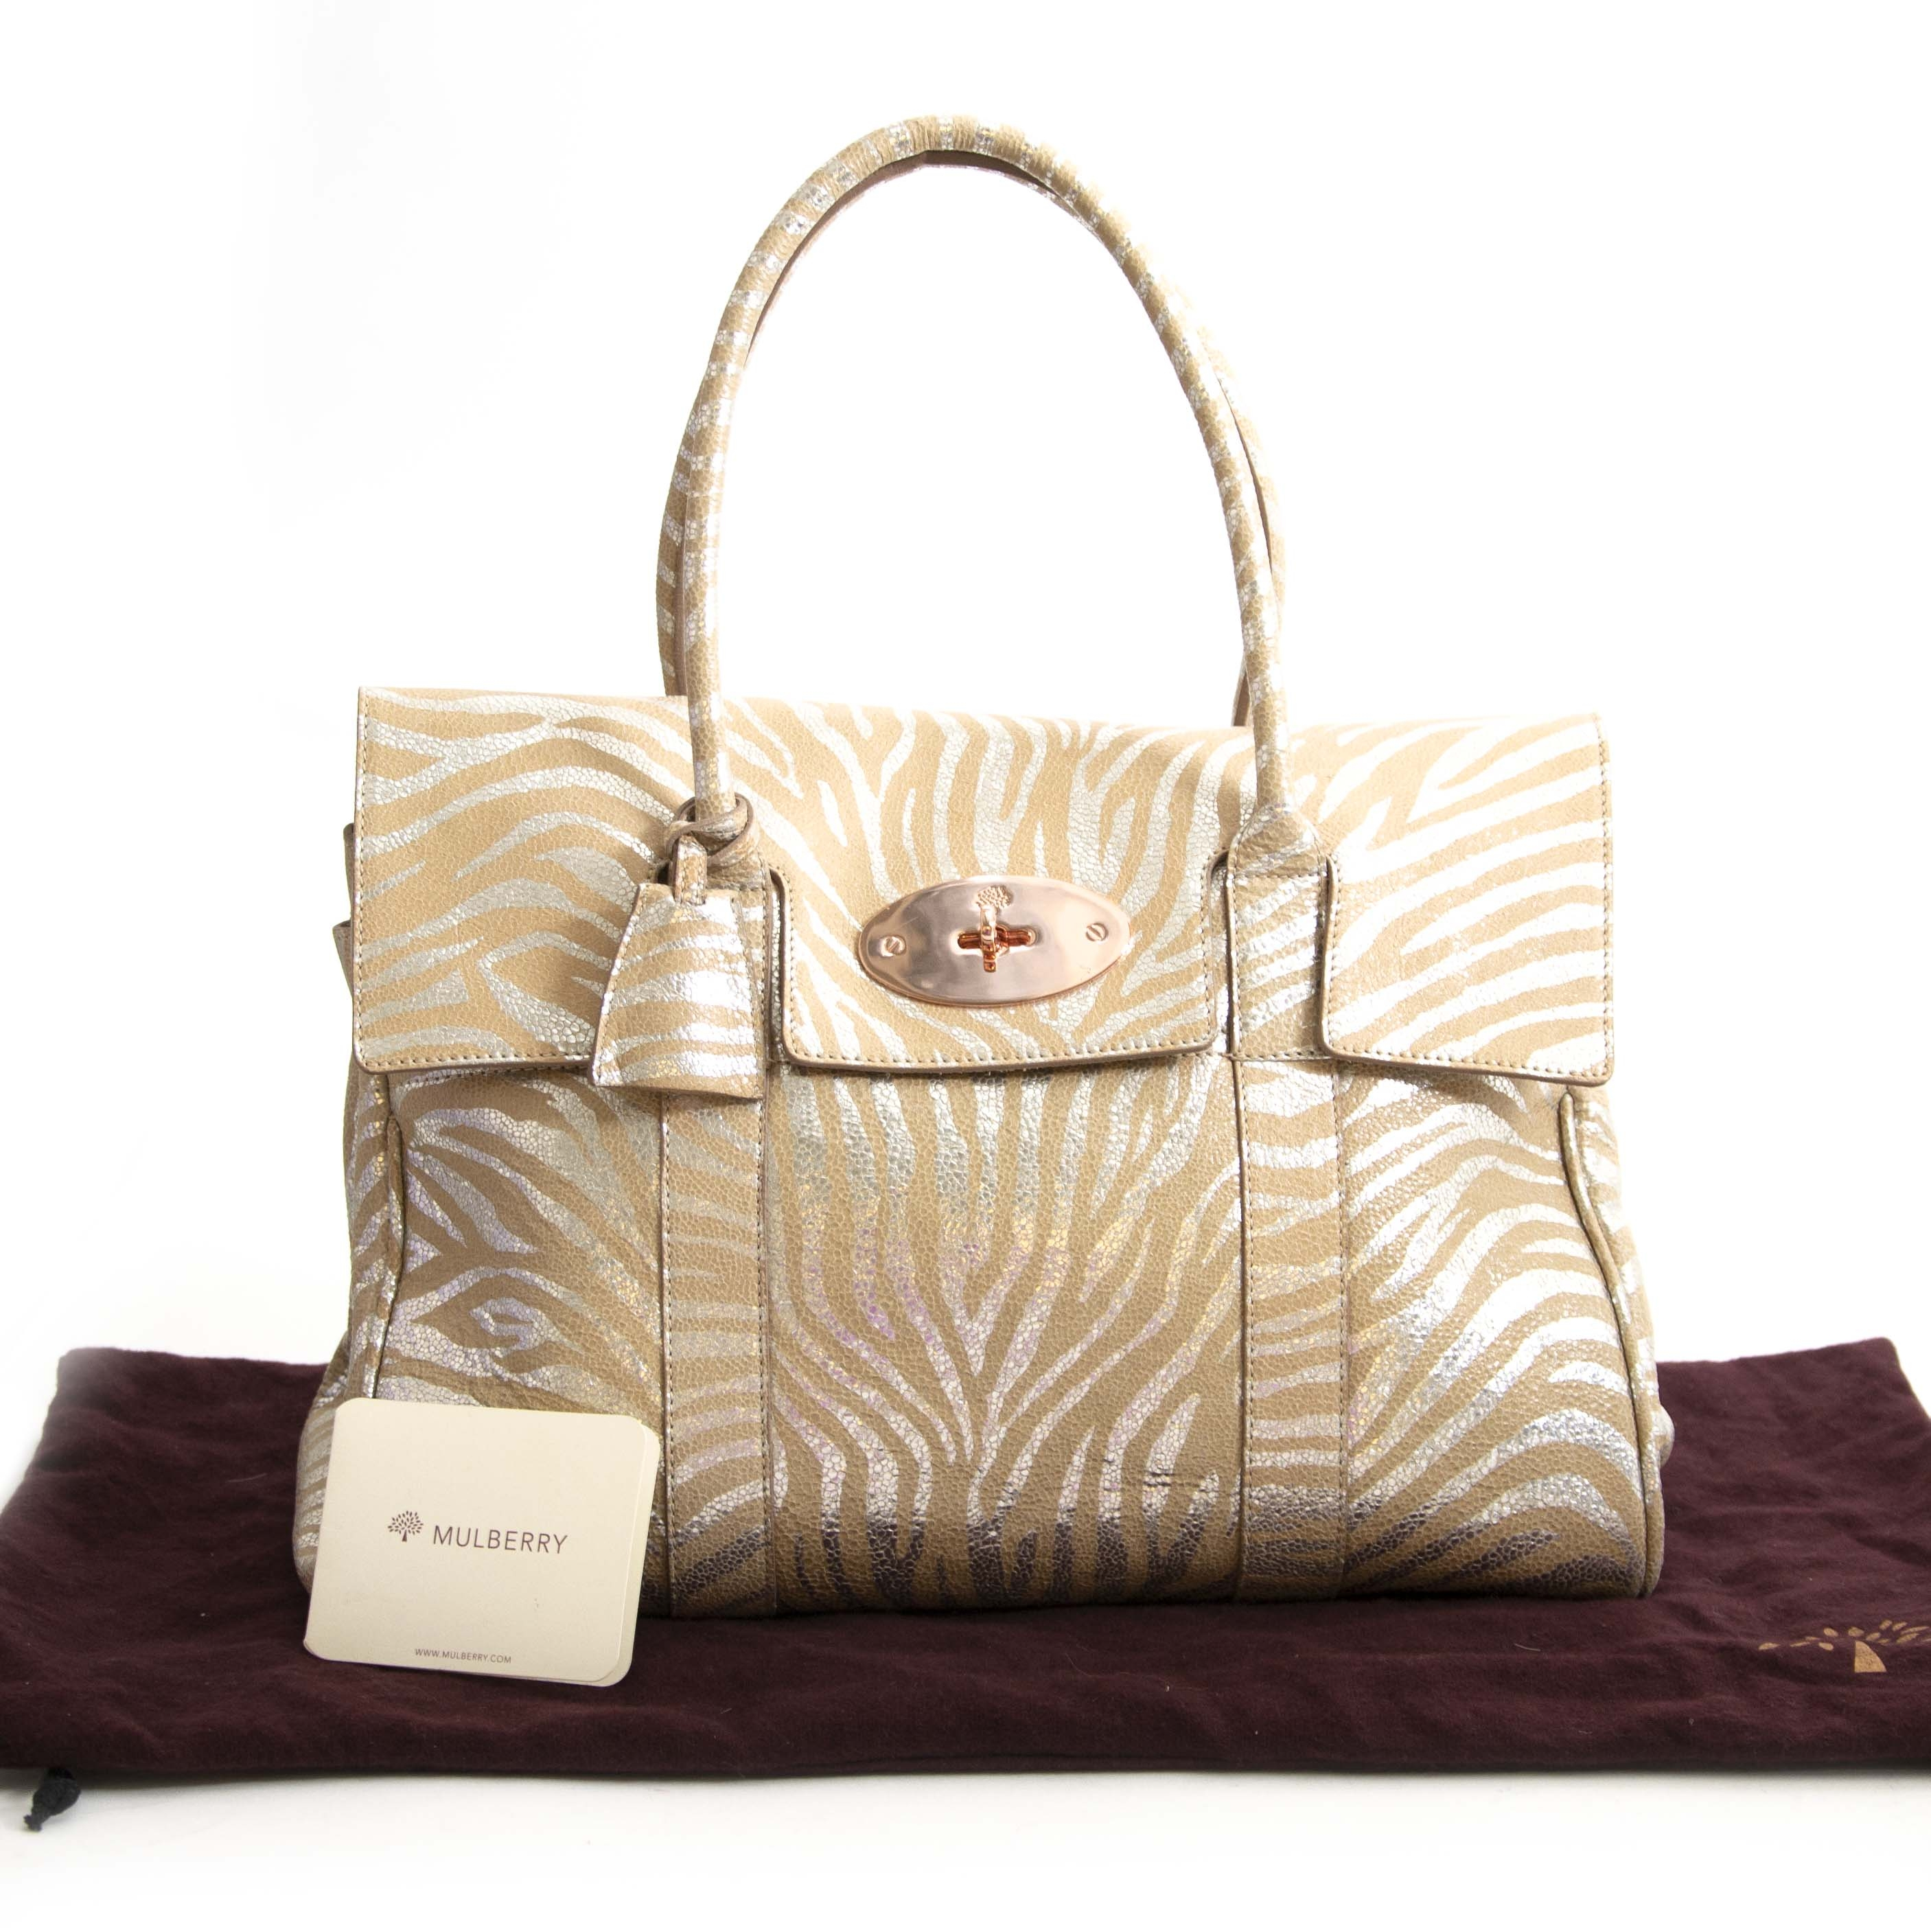 7acde28040db Buy this authentic second hand vintage Mulberry Bayswater Metallic Tiger Bag  at online webshop LabelLOV.